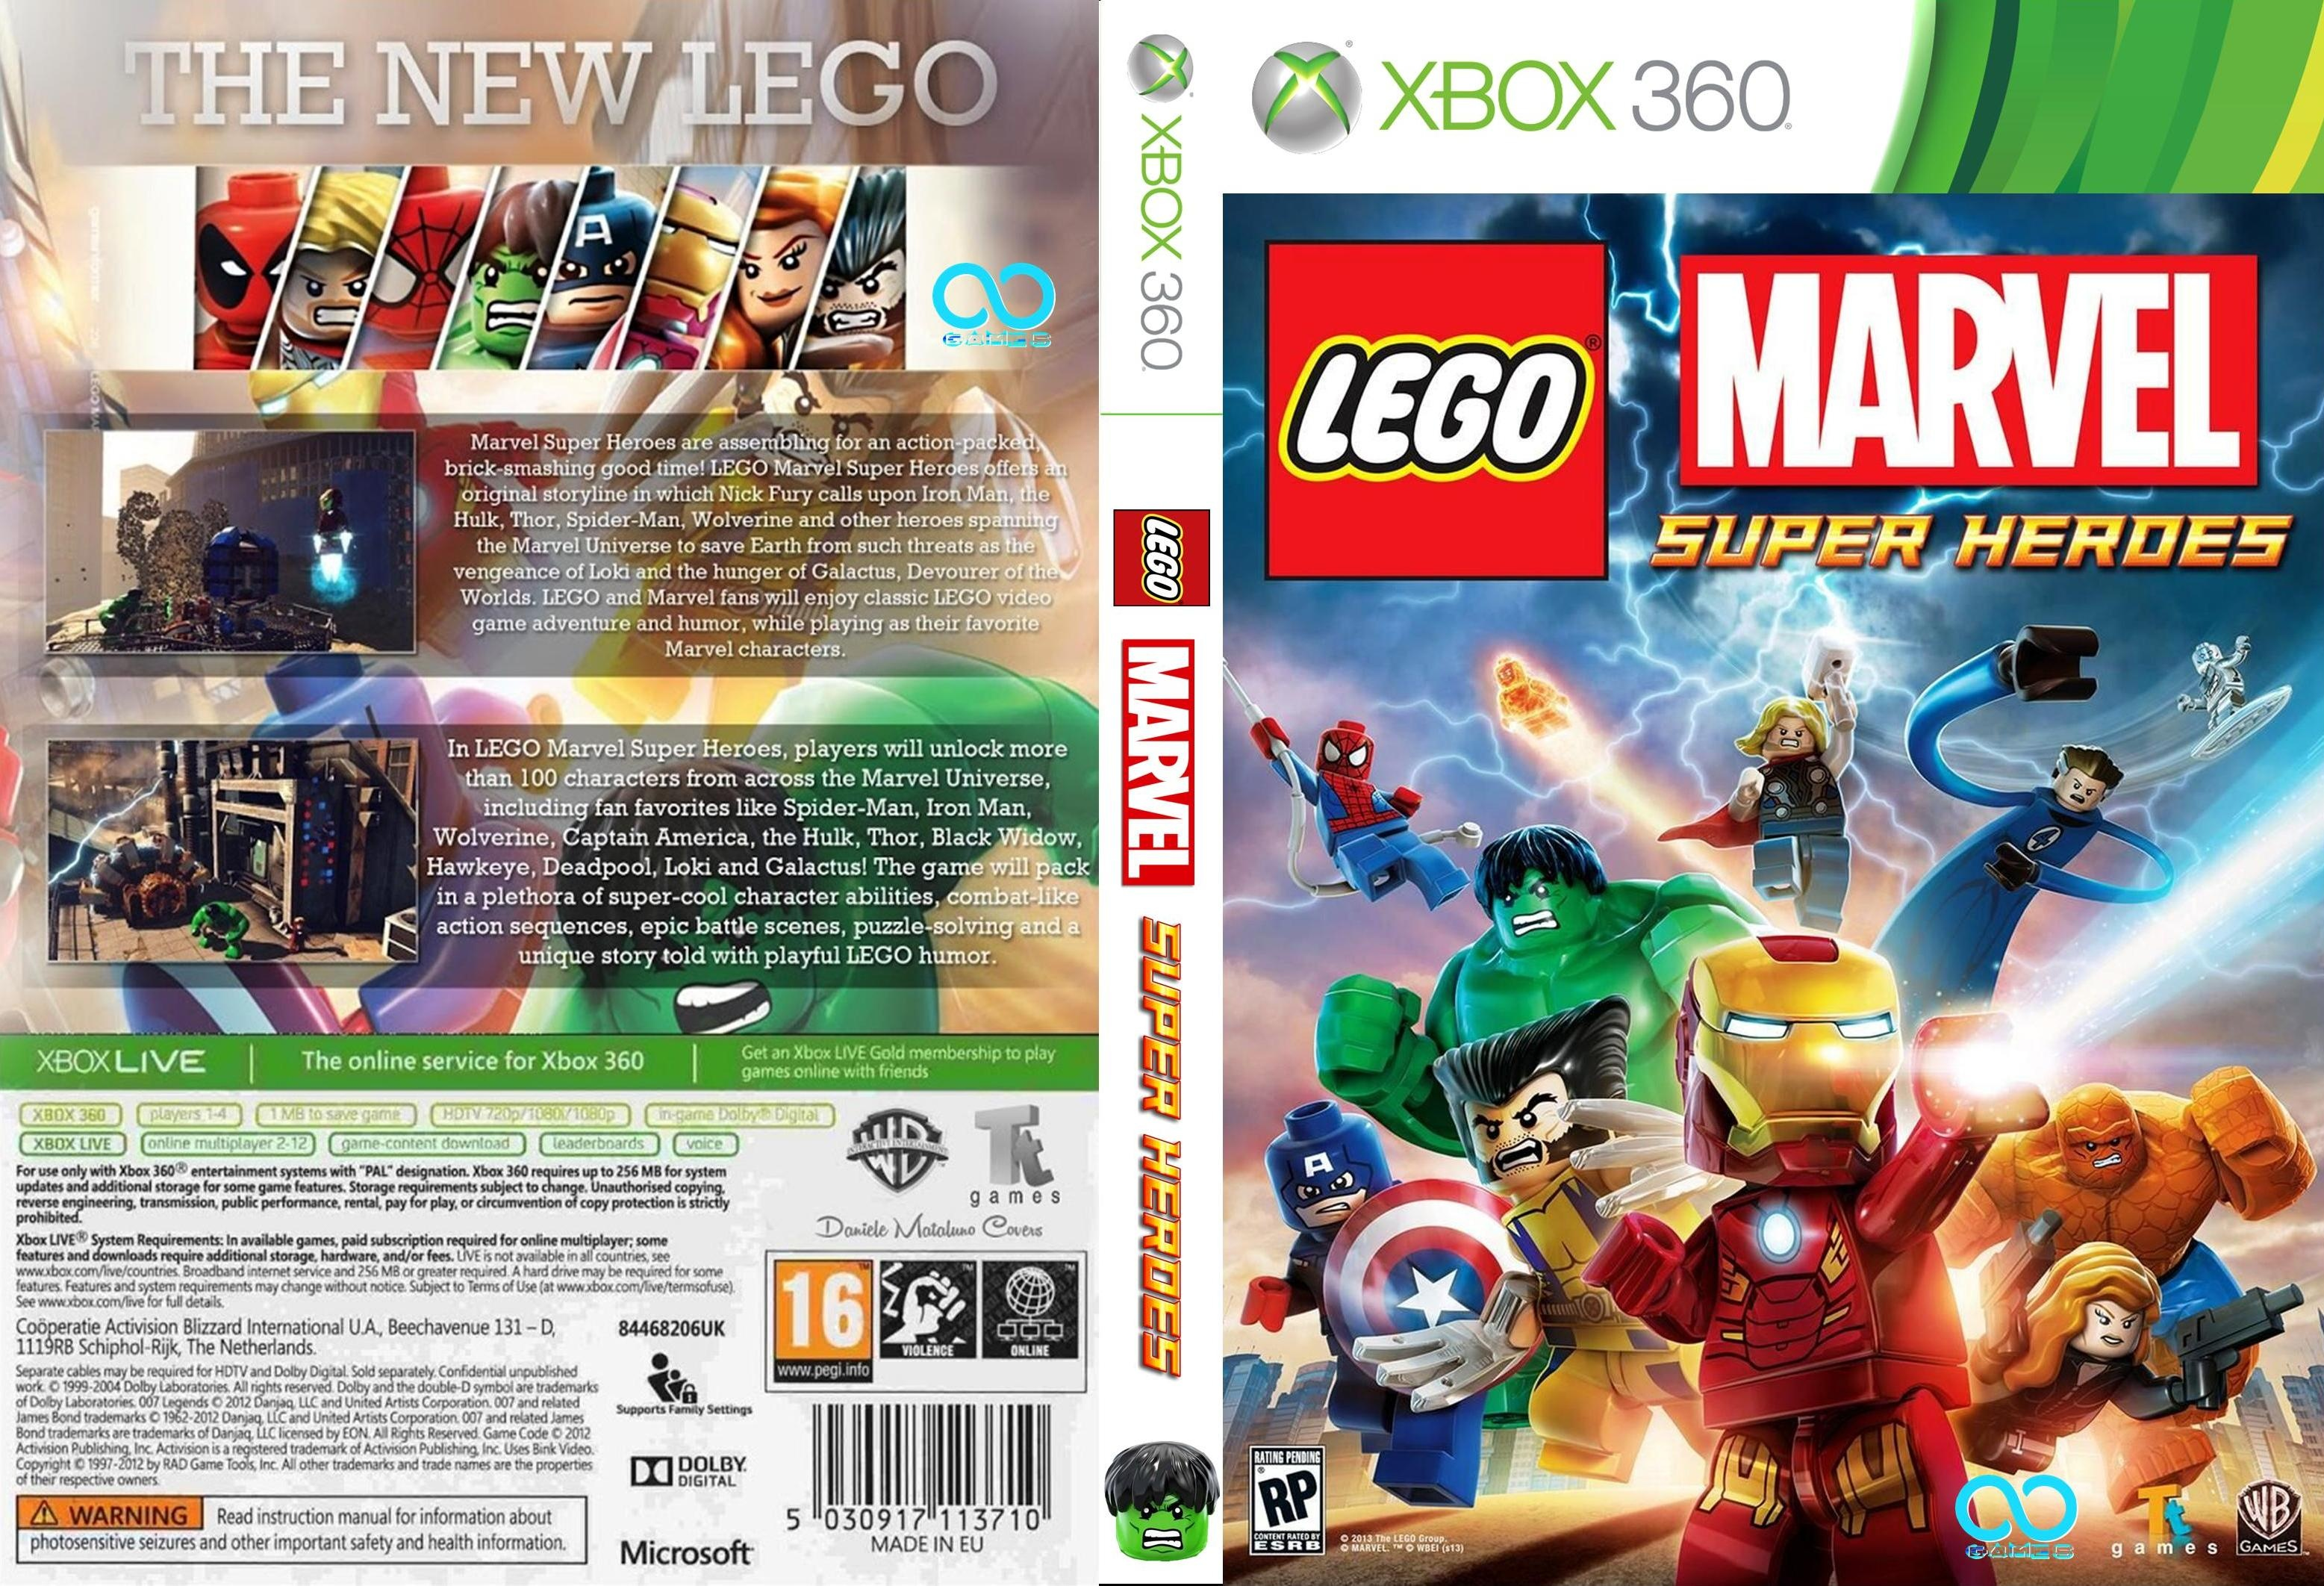 Xbox 360 Marvel Super Heroes Wiring Diagrams Diagram Powersupplycircuit Microswitchingpowersupplycircuit Lego Box Art Cover By Juan666 Rh Vgboxart Com